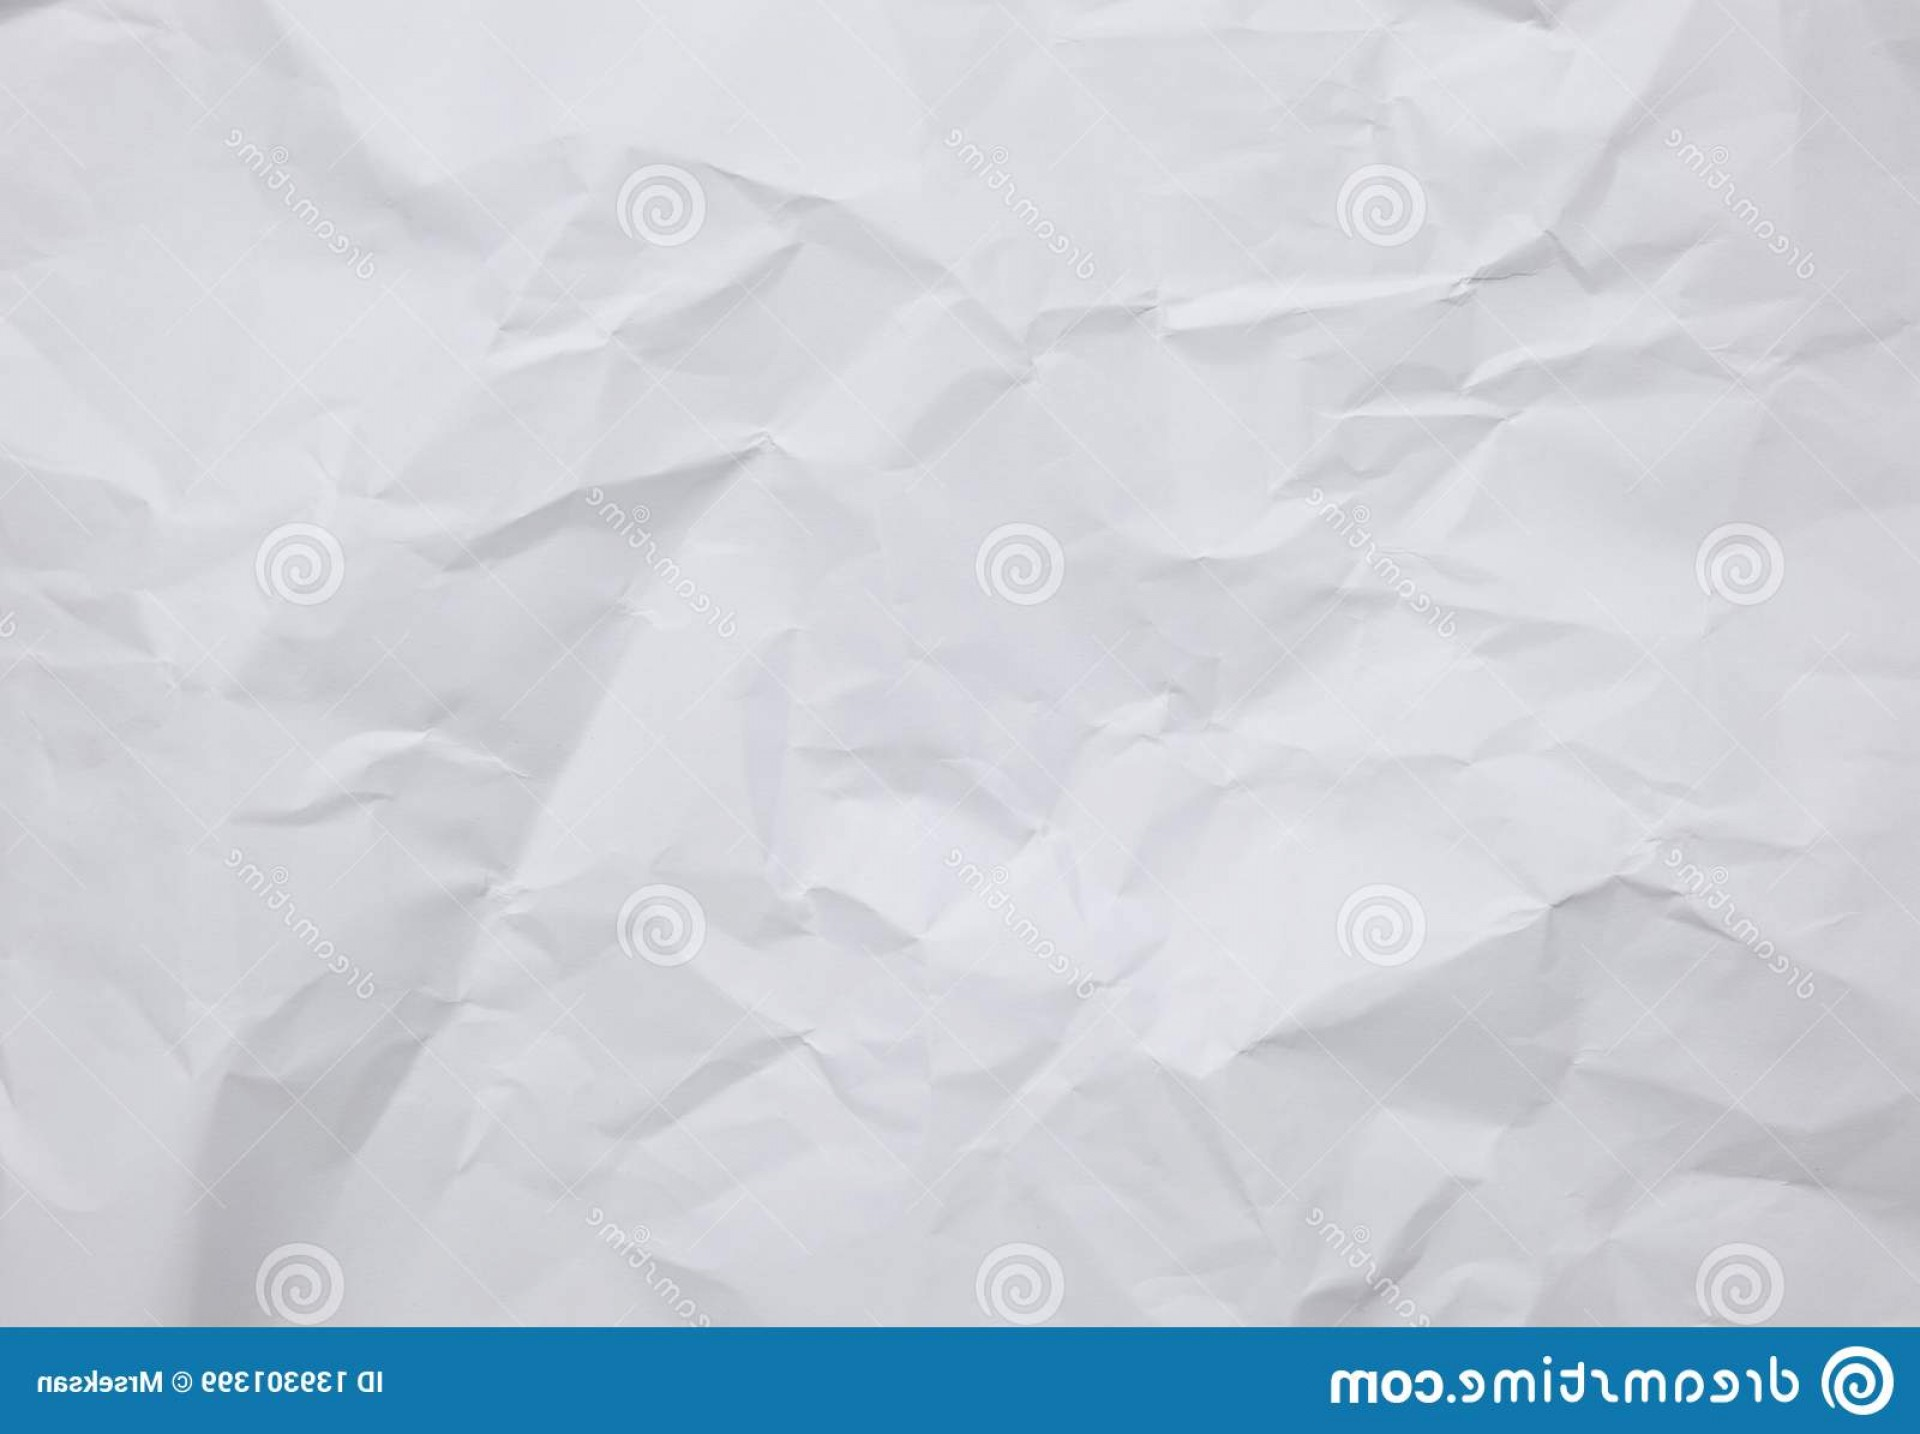 Crinkled Paper Vector: White Crinkle Paper Sheet Background Textures Abstract White Crinkle Paper Background Textures Image